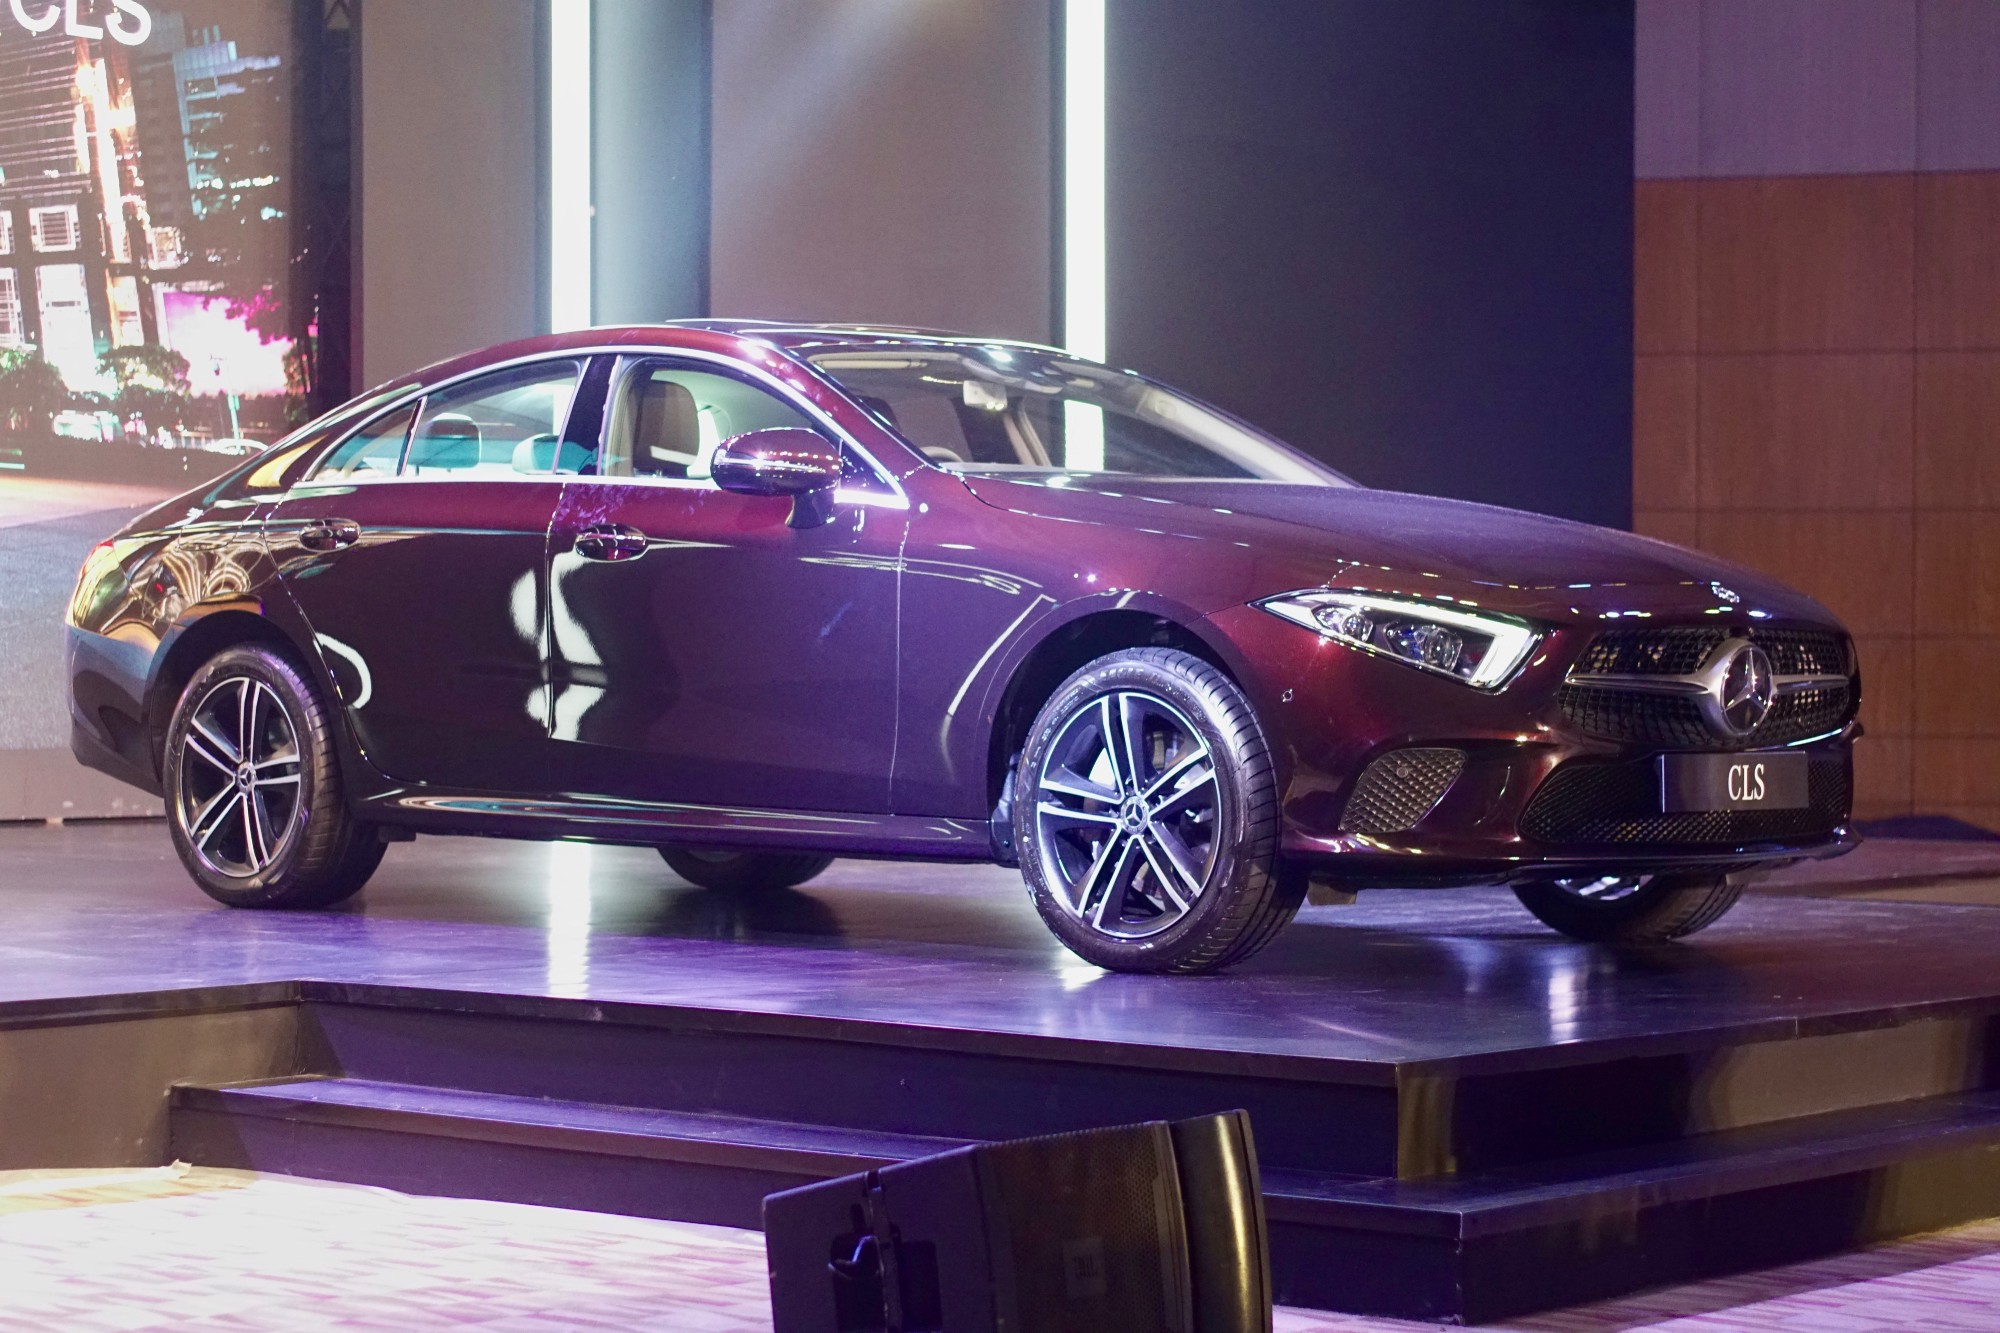 Mercedes Benz India Launches Cls300d Four Door Coupe For Thin Check Engine Out That Jacked Up Ride Height